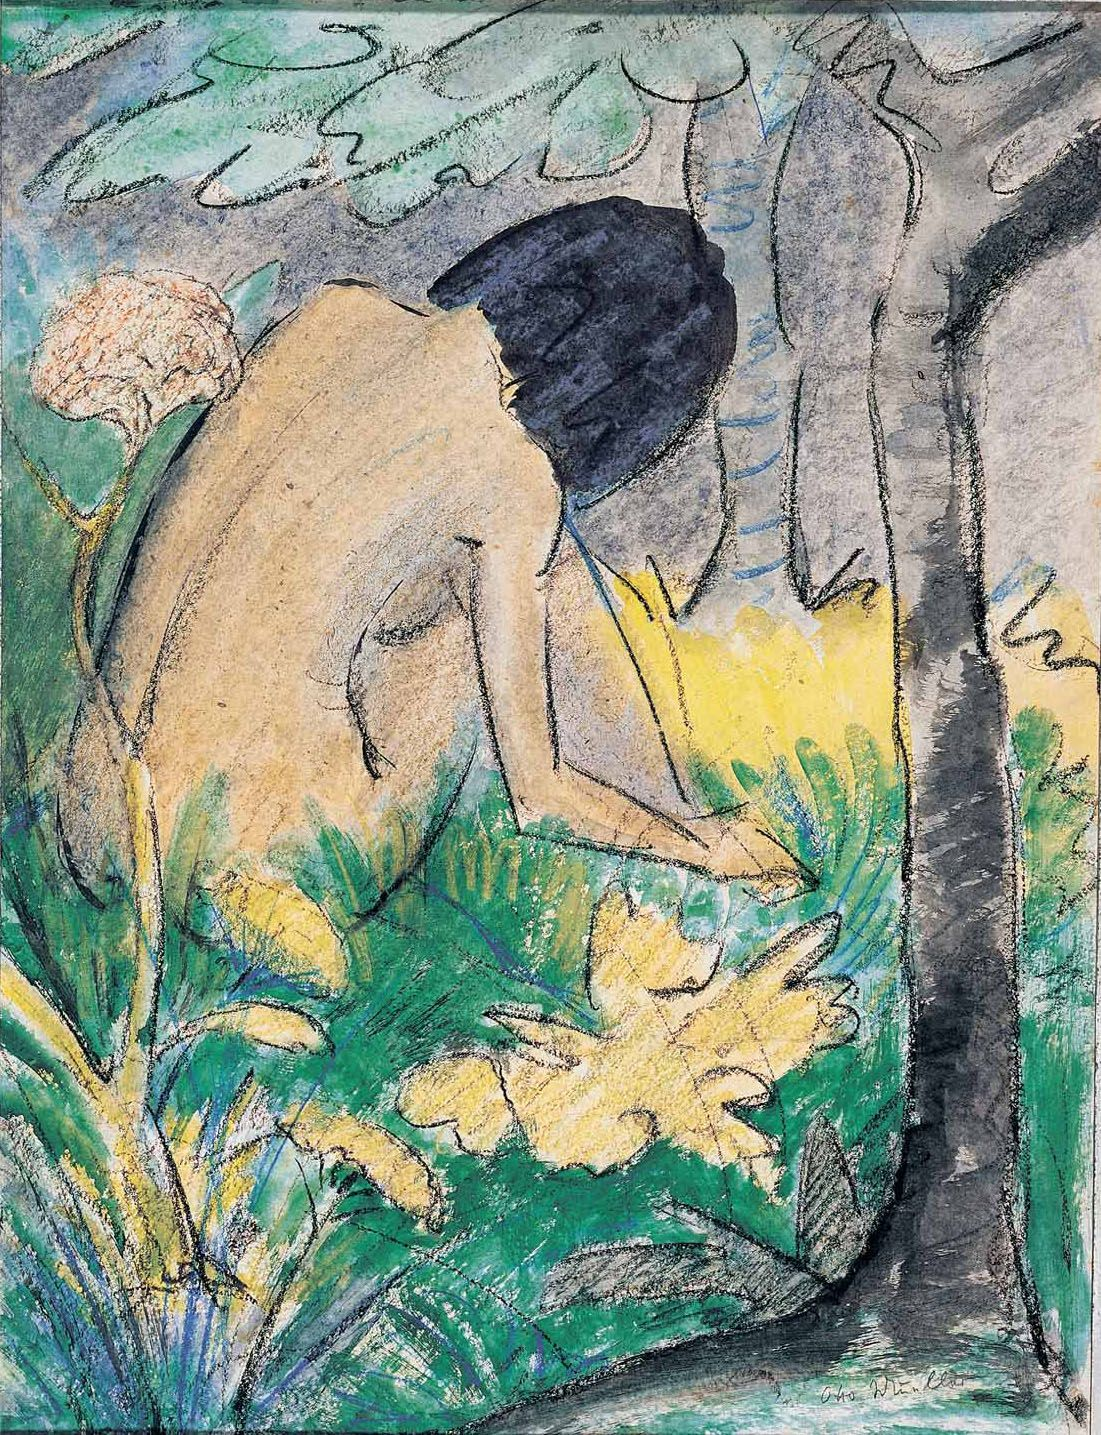 Otto Mueller (1874–1930), Kauerndes Mädchen im Walde, 1920–1922, watercolour and chalk on paper, 66 x 52.5 cm / 25.98 x 20.47 in.